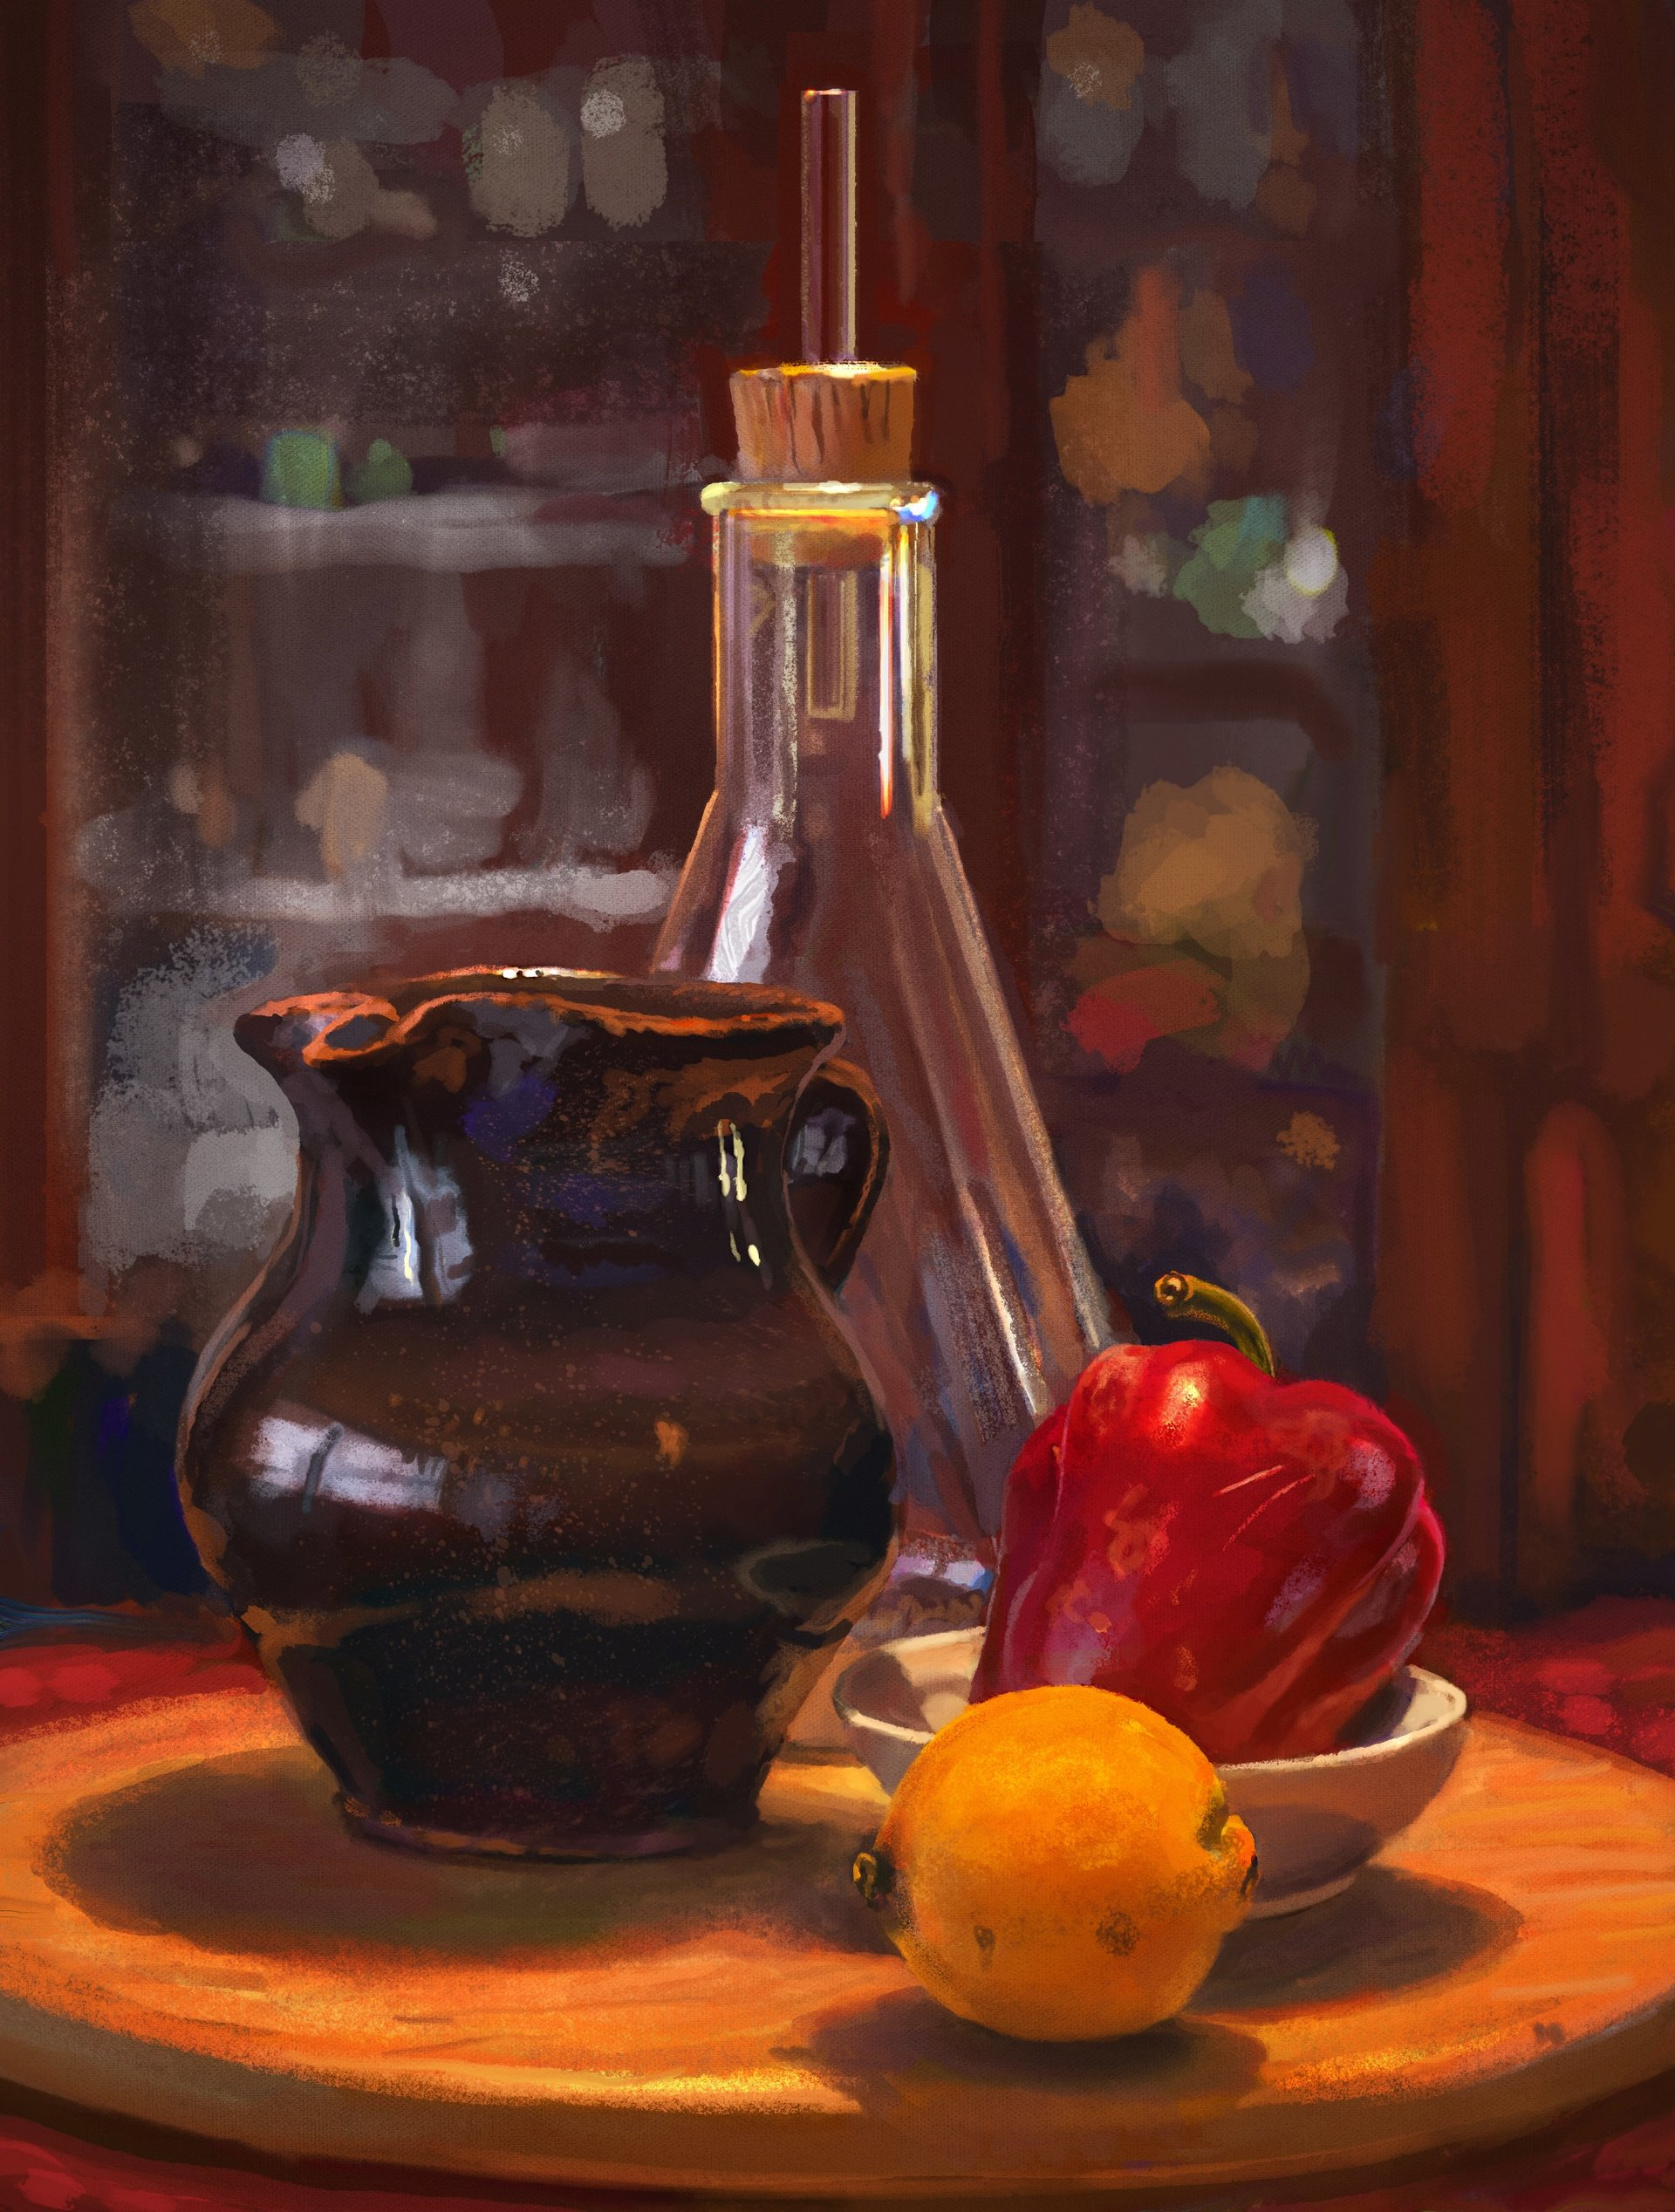 Paolo giandoso digital stilllife 03